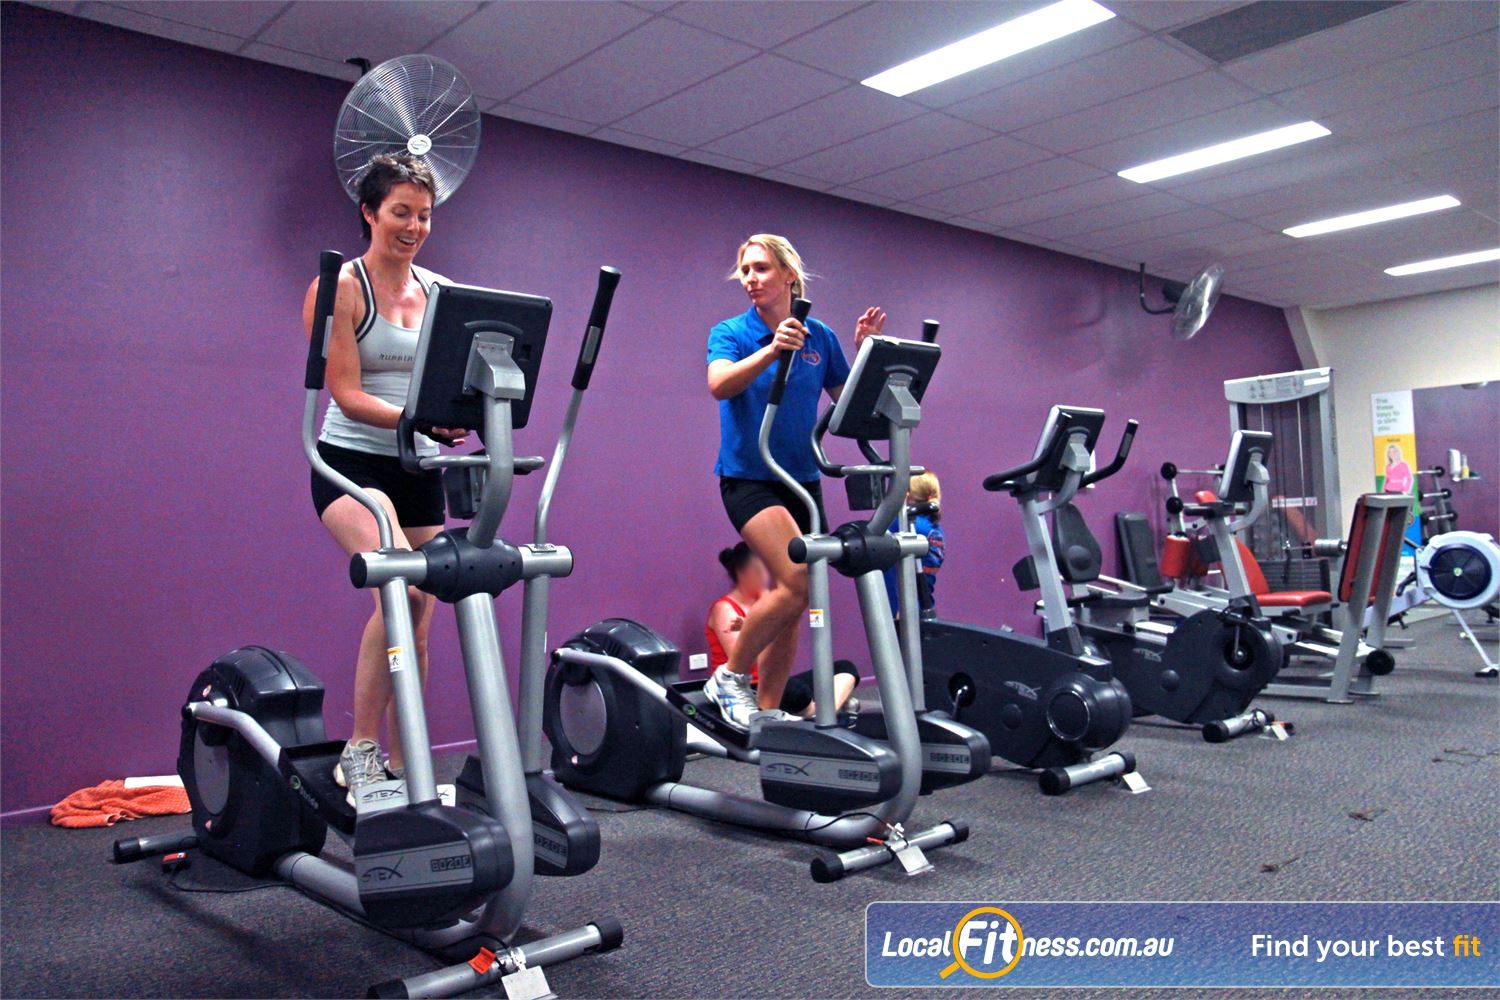 Goodlife Health Clubs Alexandra Hills Dedicated ladies only cardio area.